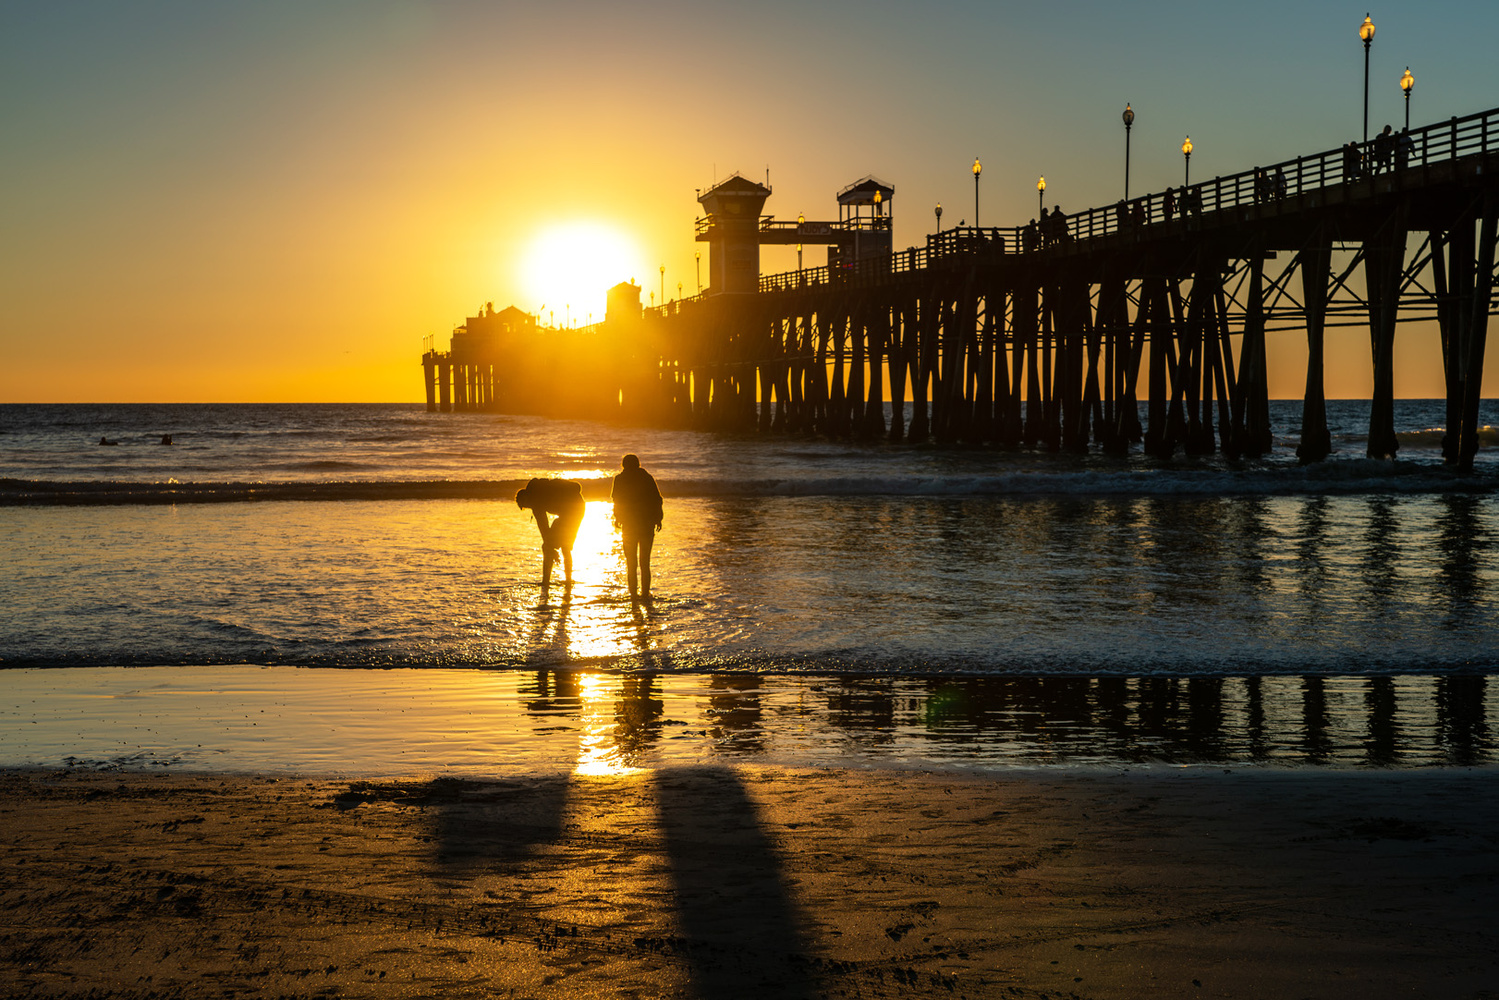 Sunset at the Pier by Teri Dashfield